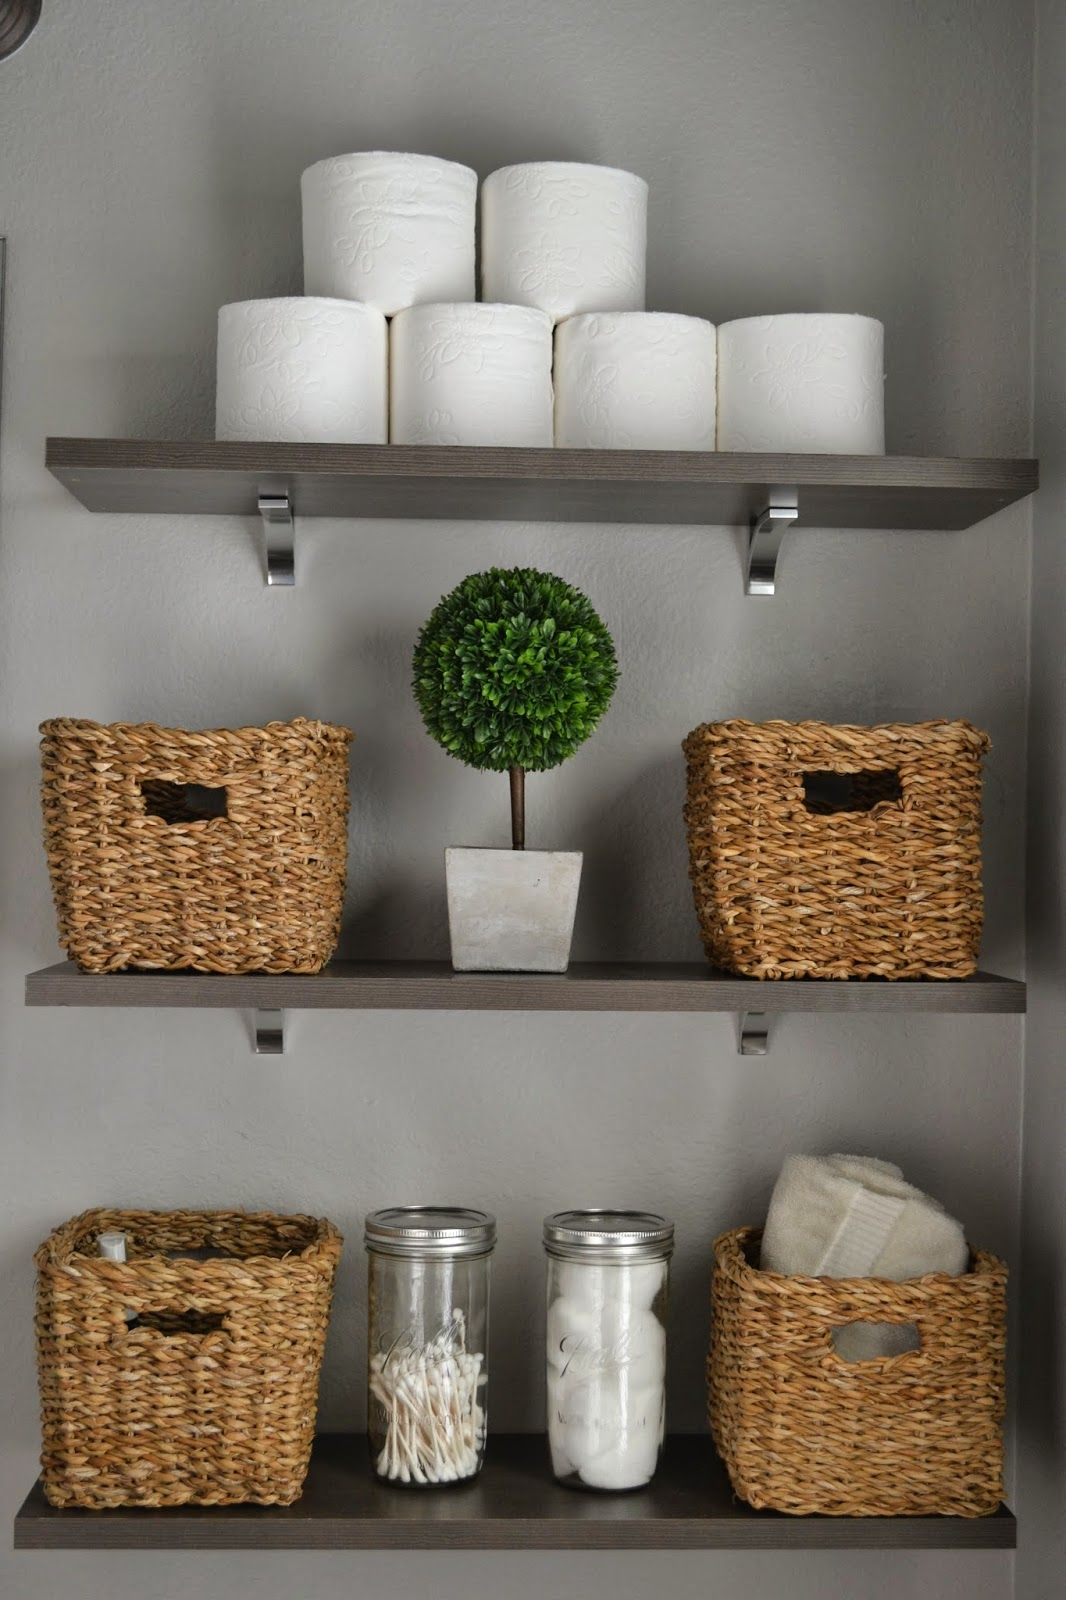 Take toilet paper out of the plastic and stack them baskets and